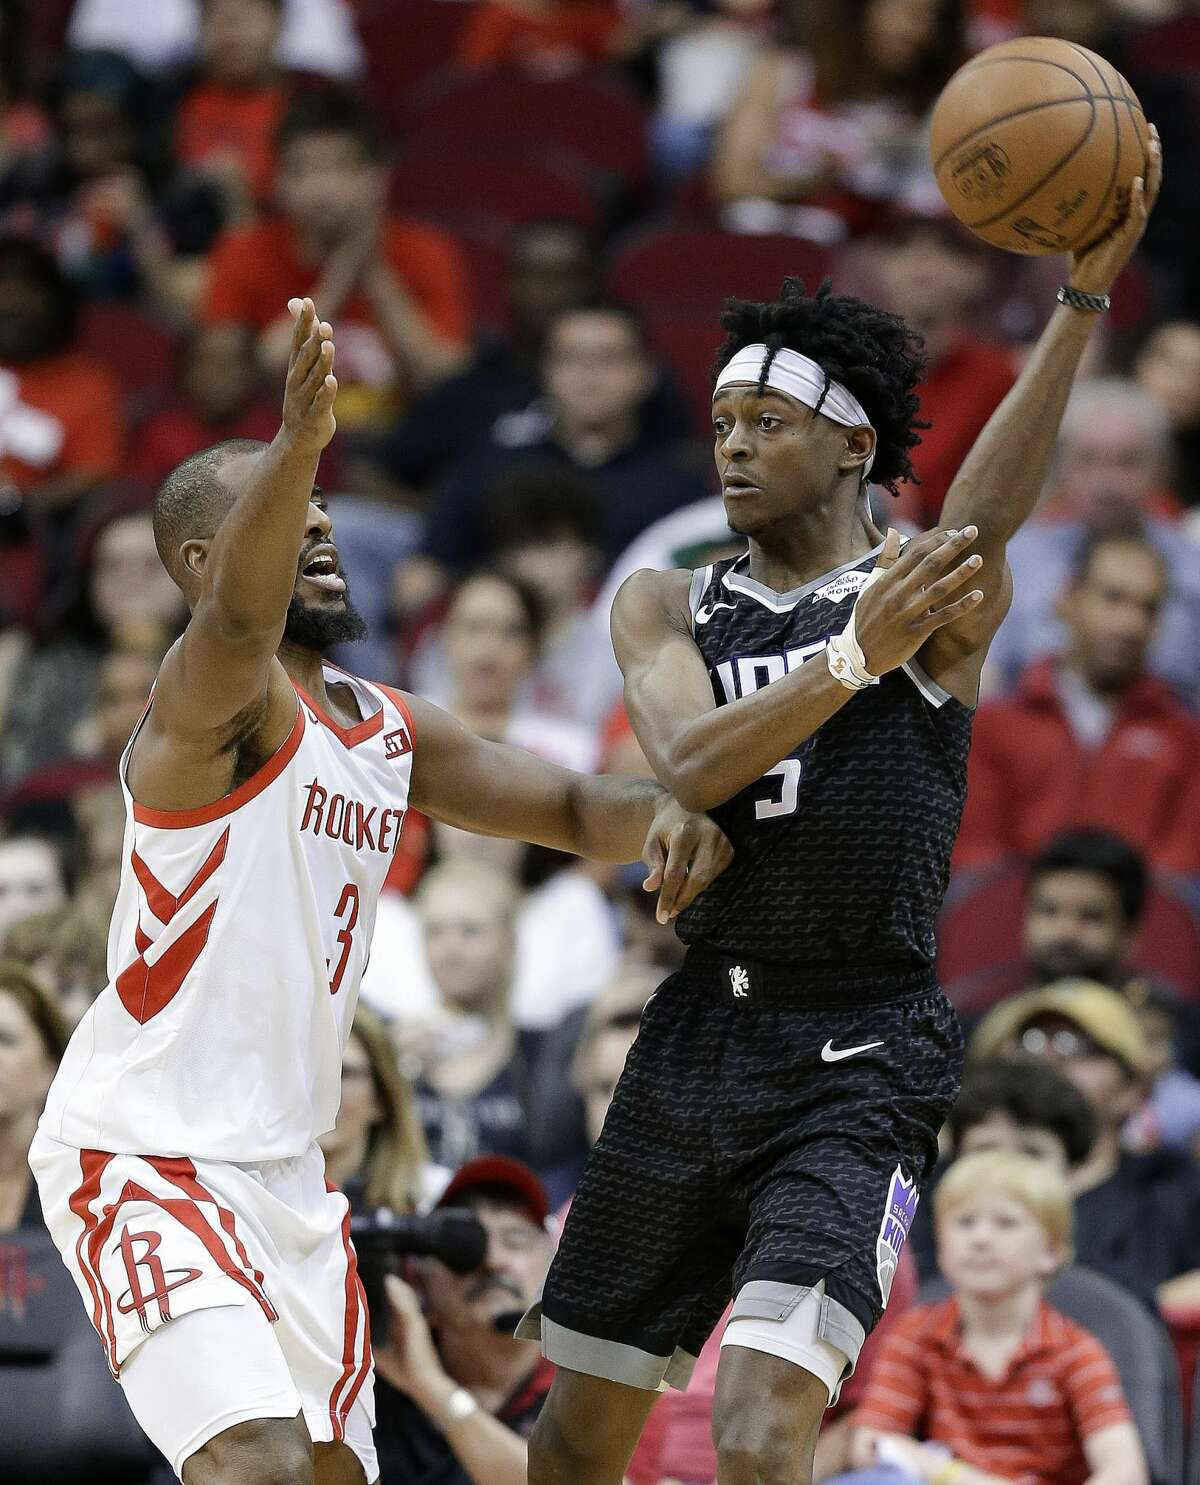 Sacramento Kings guard De'Aaron Fox, right, passes the ball as Houston Rockets guard Chris Paul defends during the second half of an NBA basketball game Saturday, March 30, 2019, in Houston. Houston won 119-108. (AP Photo/Eric Christian Smith)